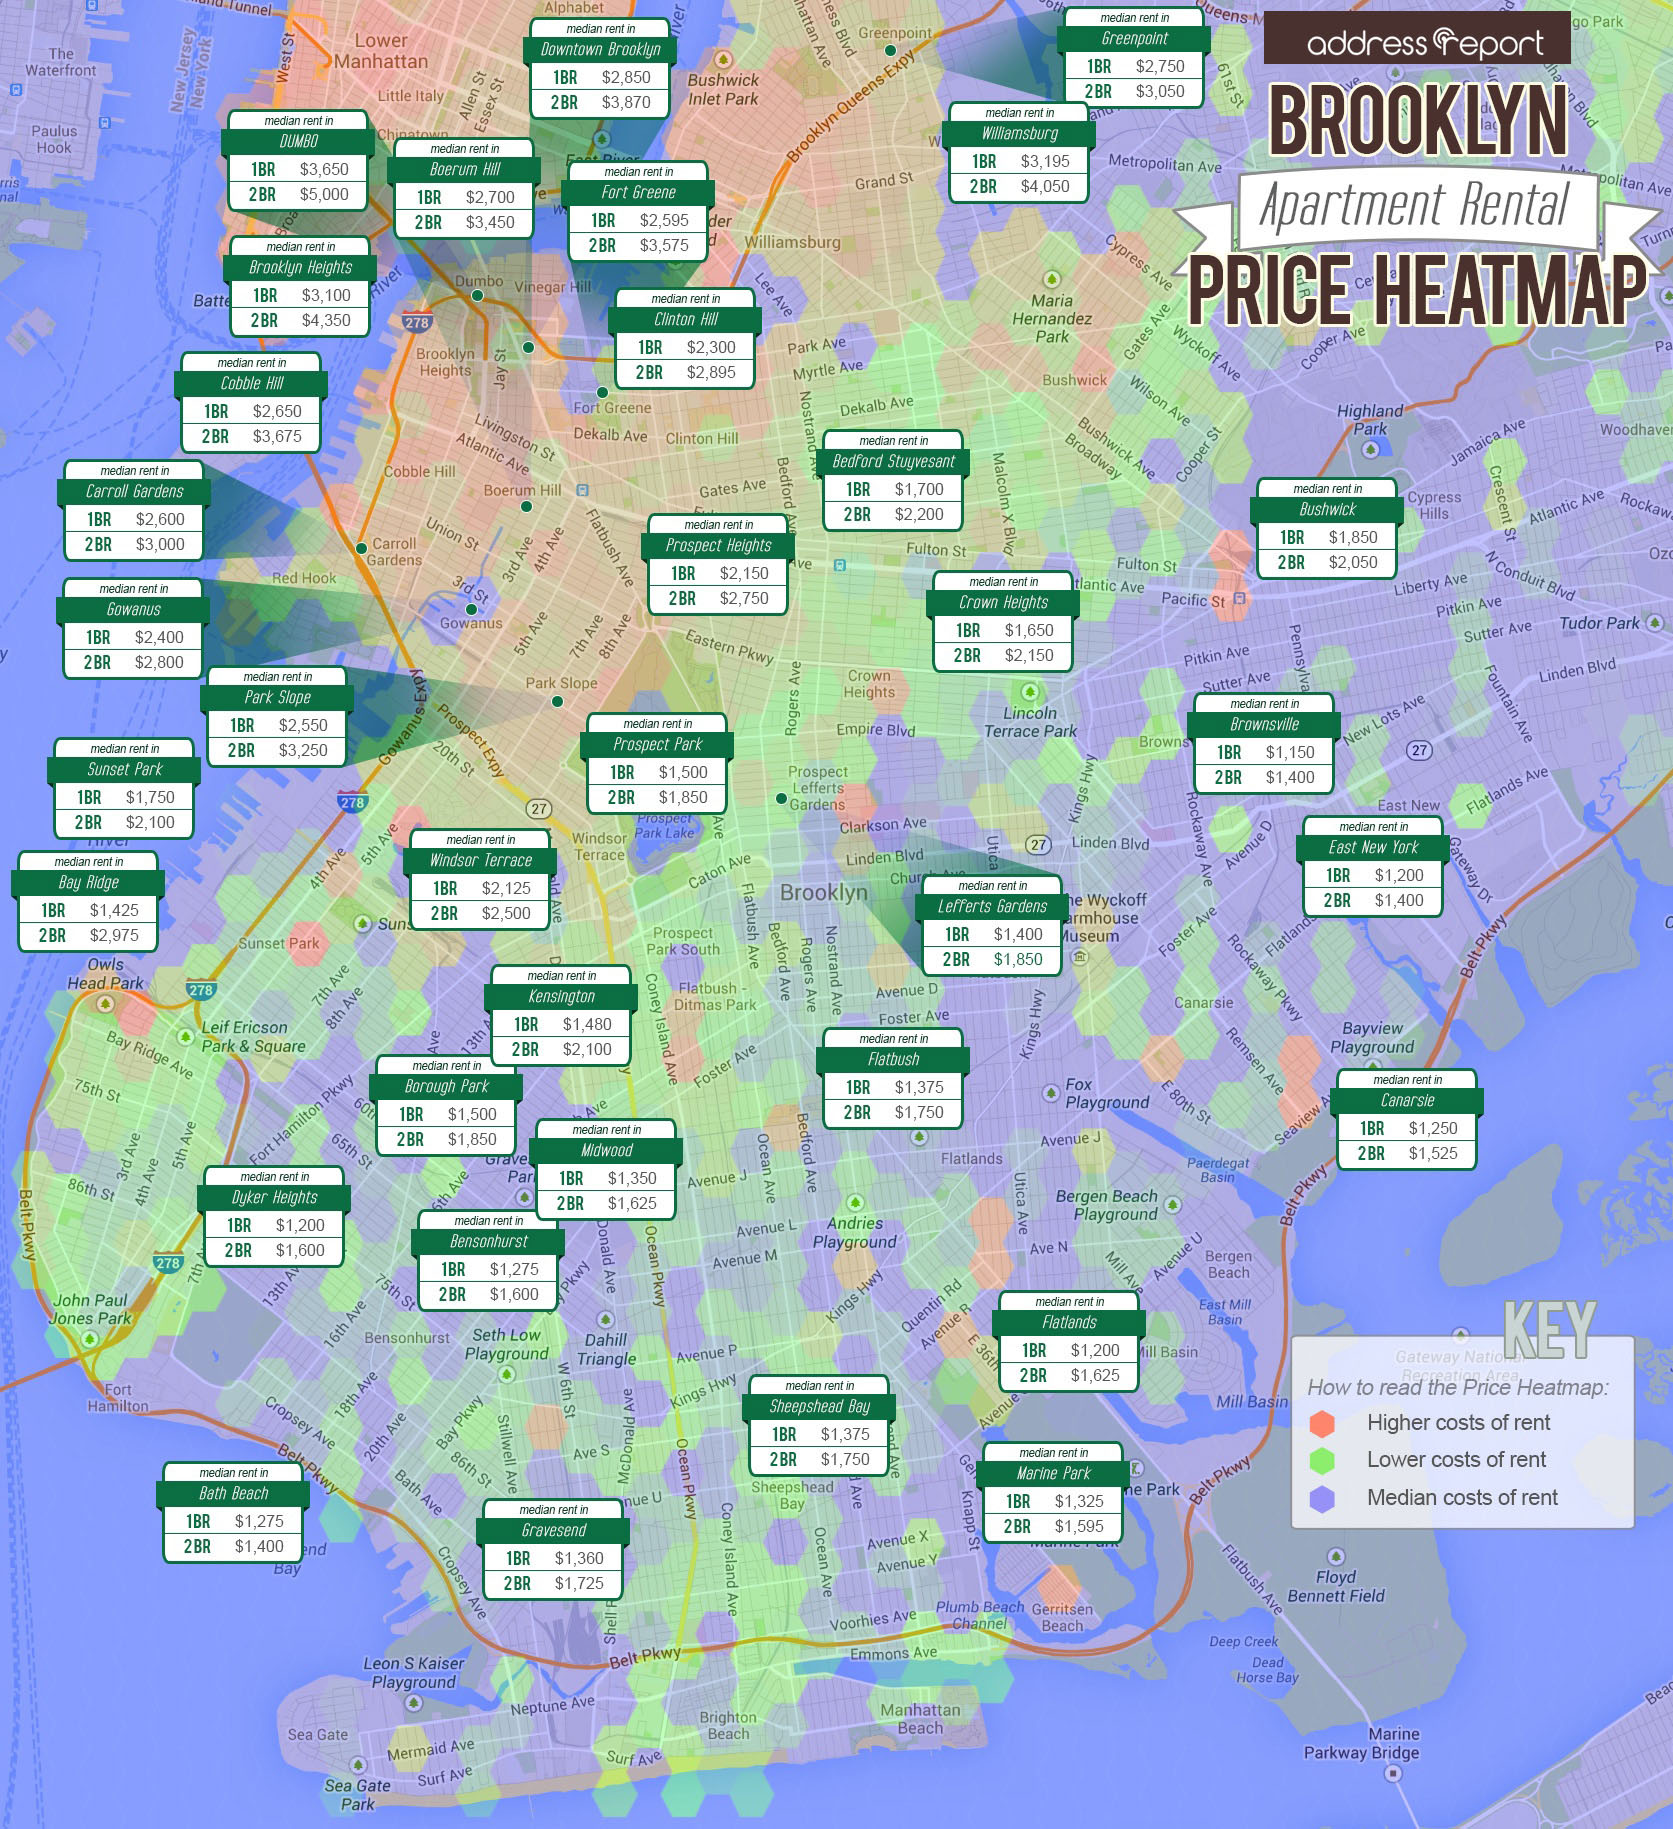 Brooklyn Apartment Rental Prices Map AddressReport Blog